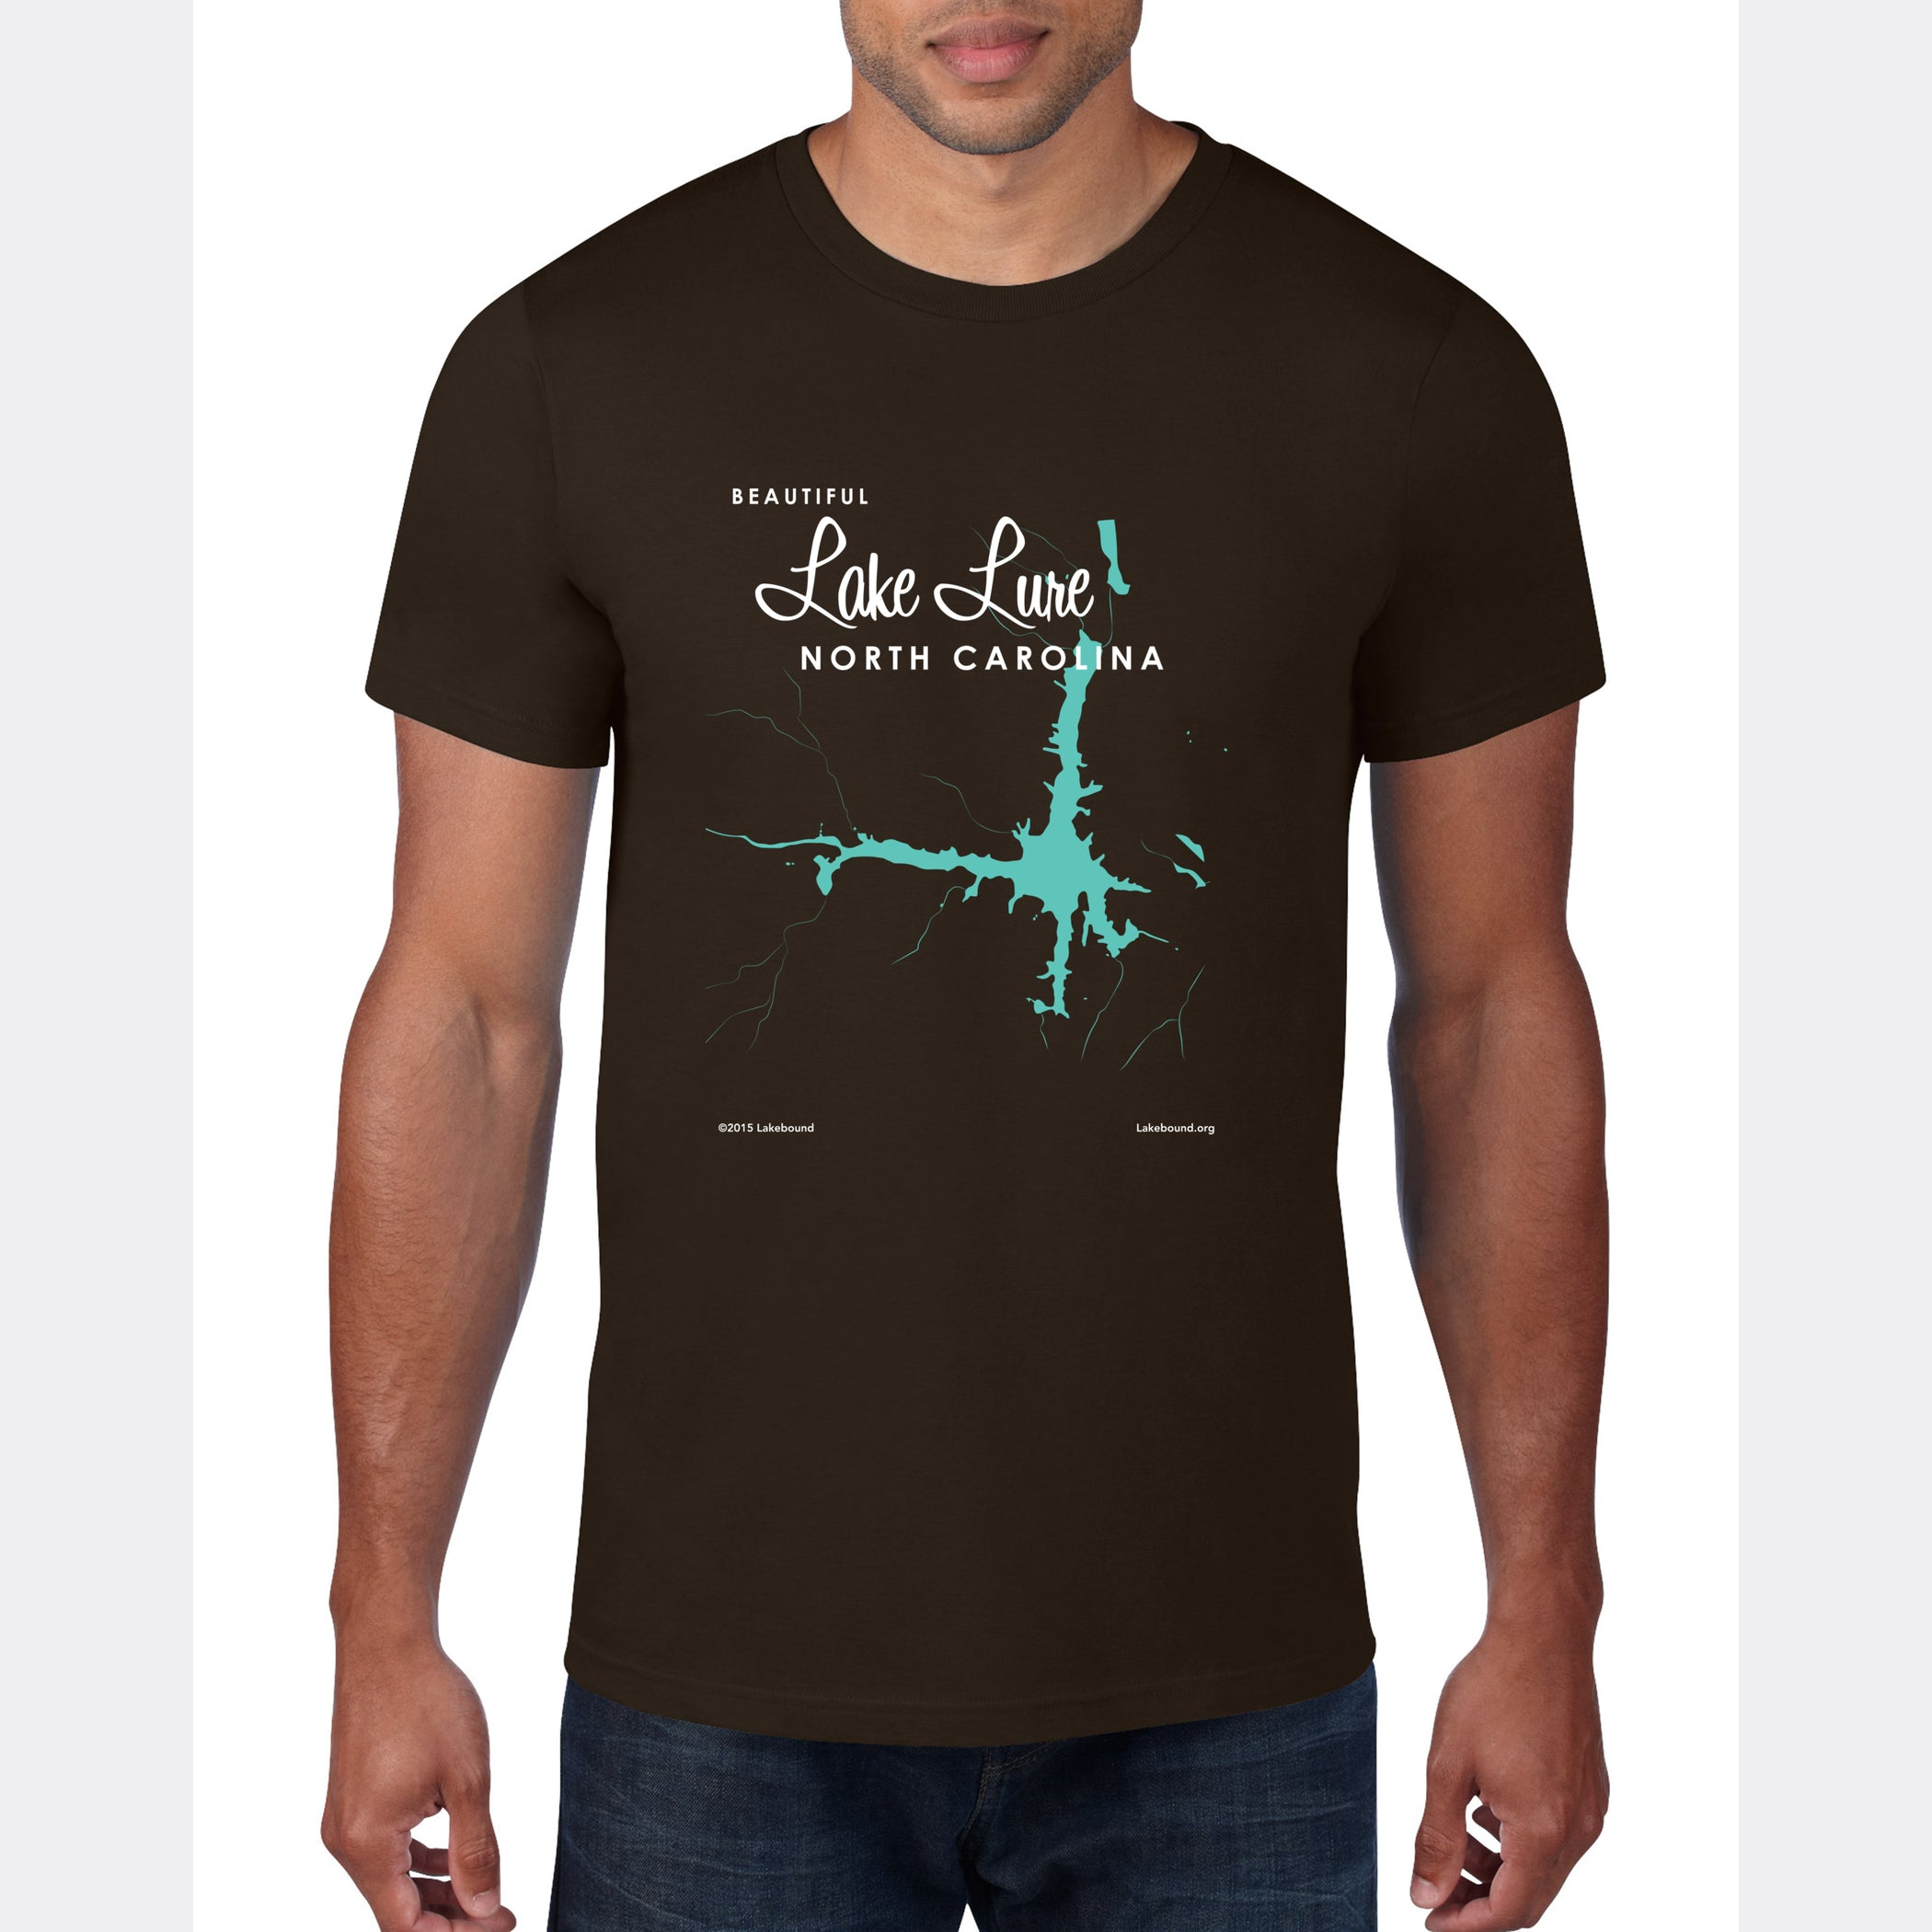 Lake Lure North Carolina, T-Shirt